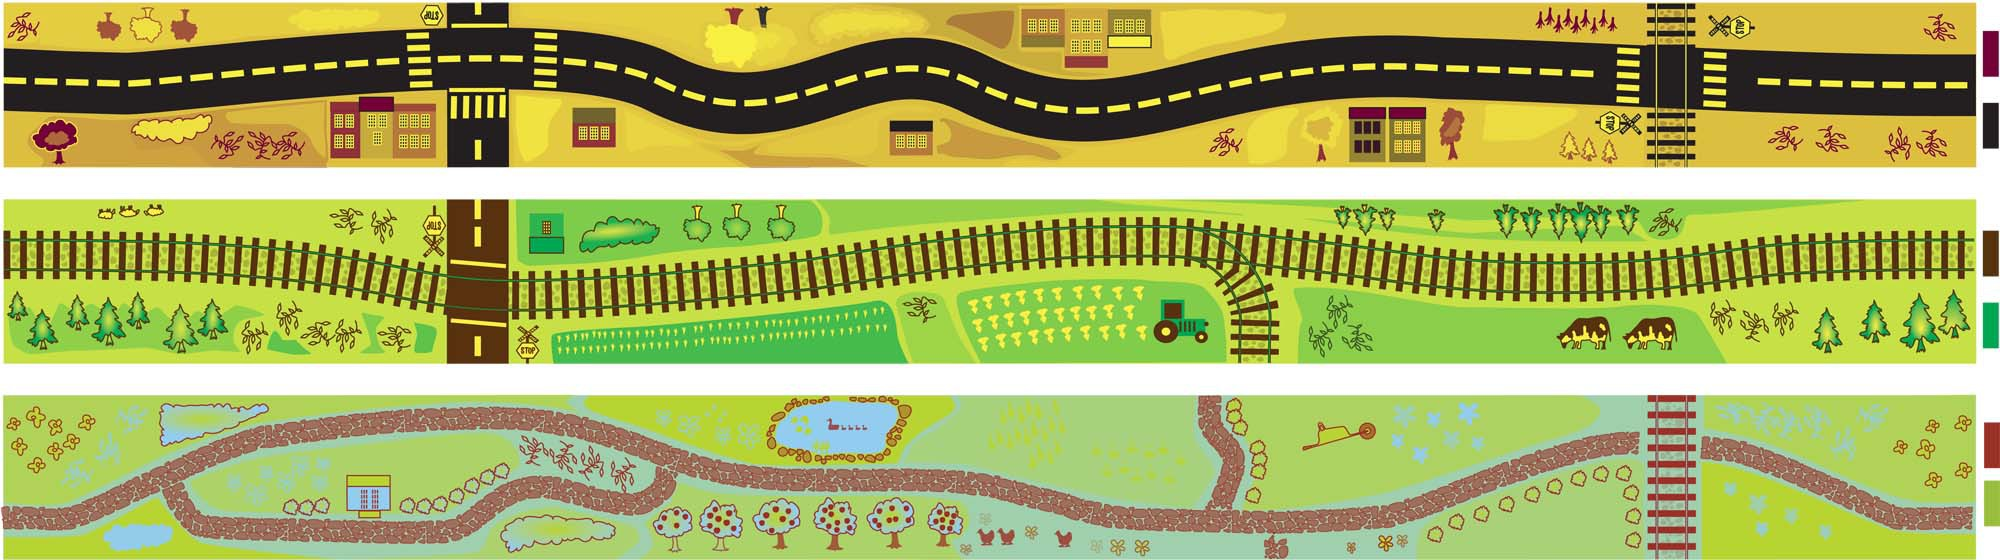 Fun (and simple) kids toy illustrations - track/road/path